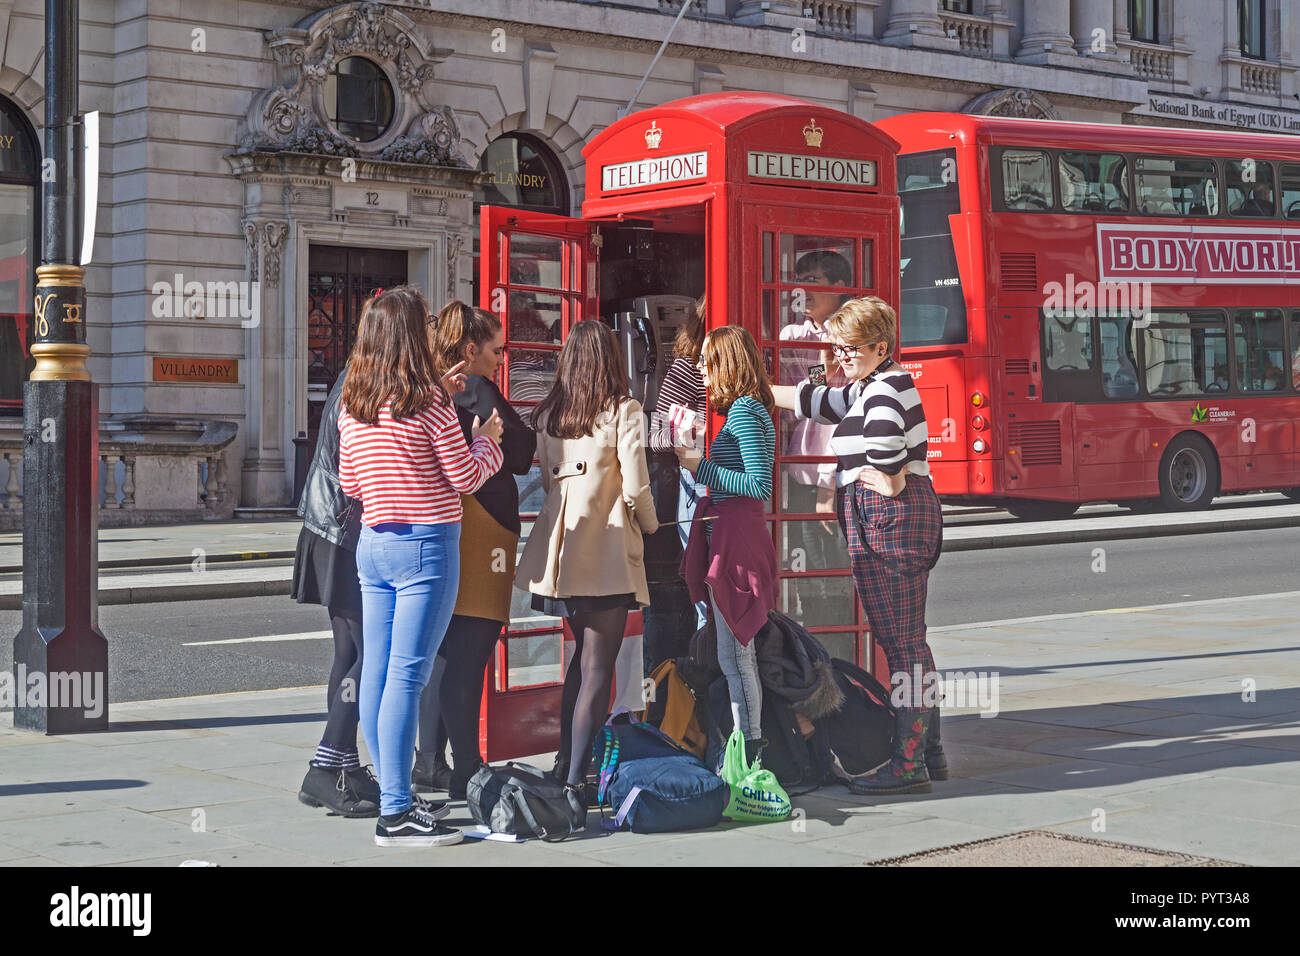 A party of young female tourists deciding to test the capacity of a traditional red telephone box in London's Waterloo Place. - Stock Image